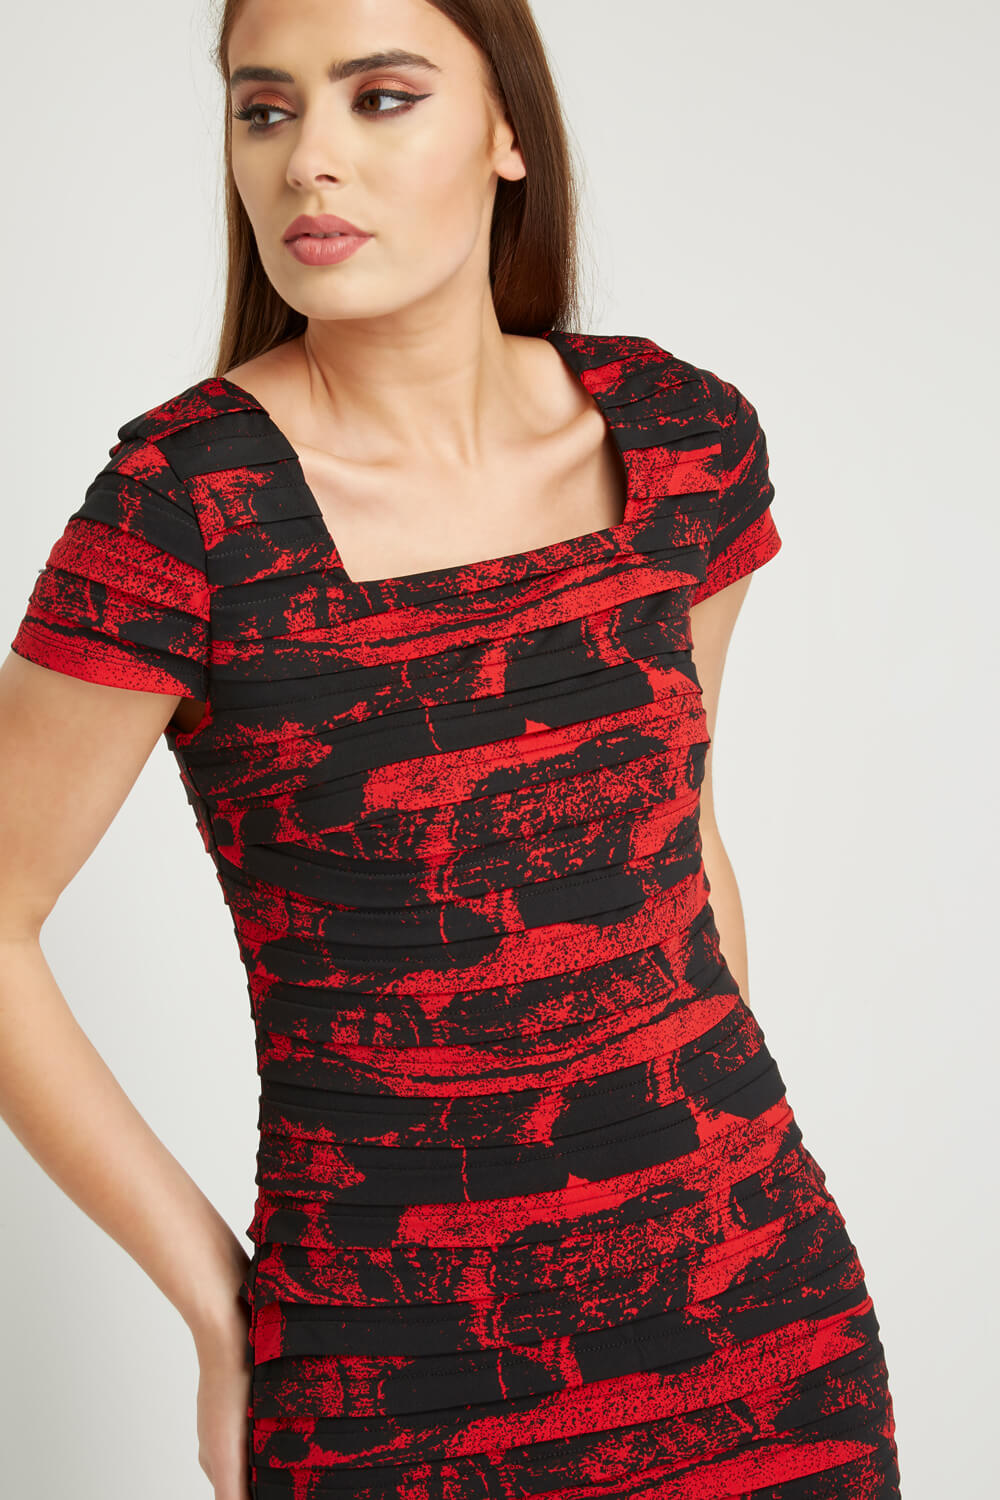 Roman-Originals-Ladies-Floral-Print-Pleated-Dress-Red thumbnail 9